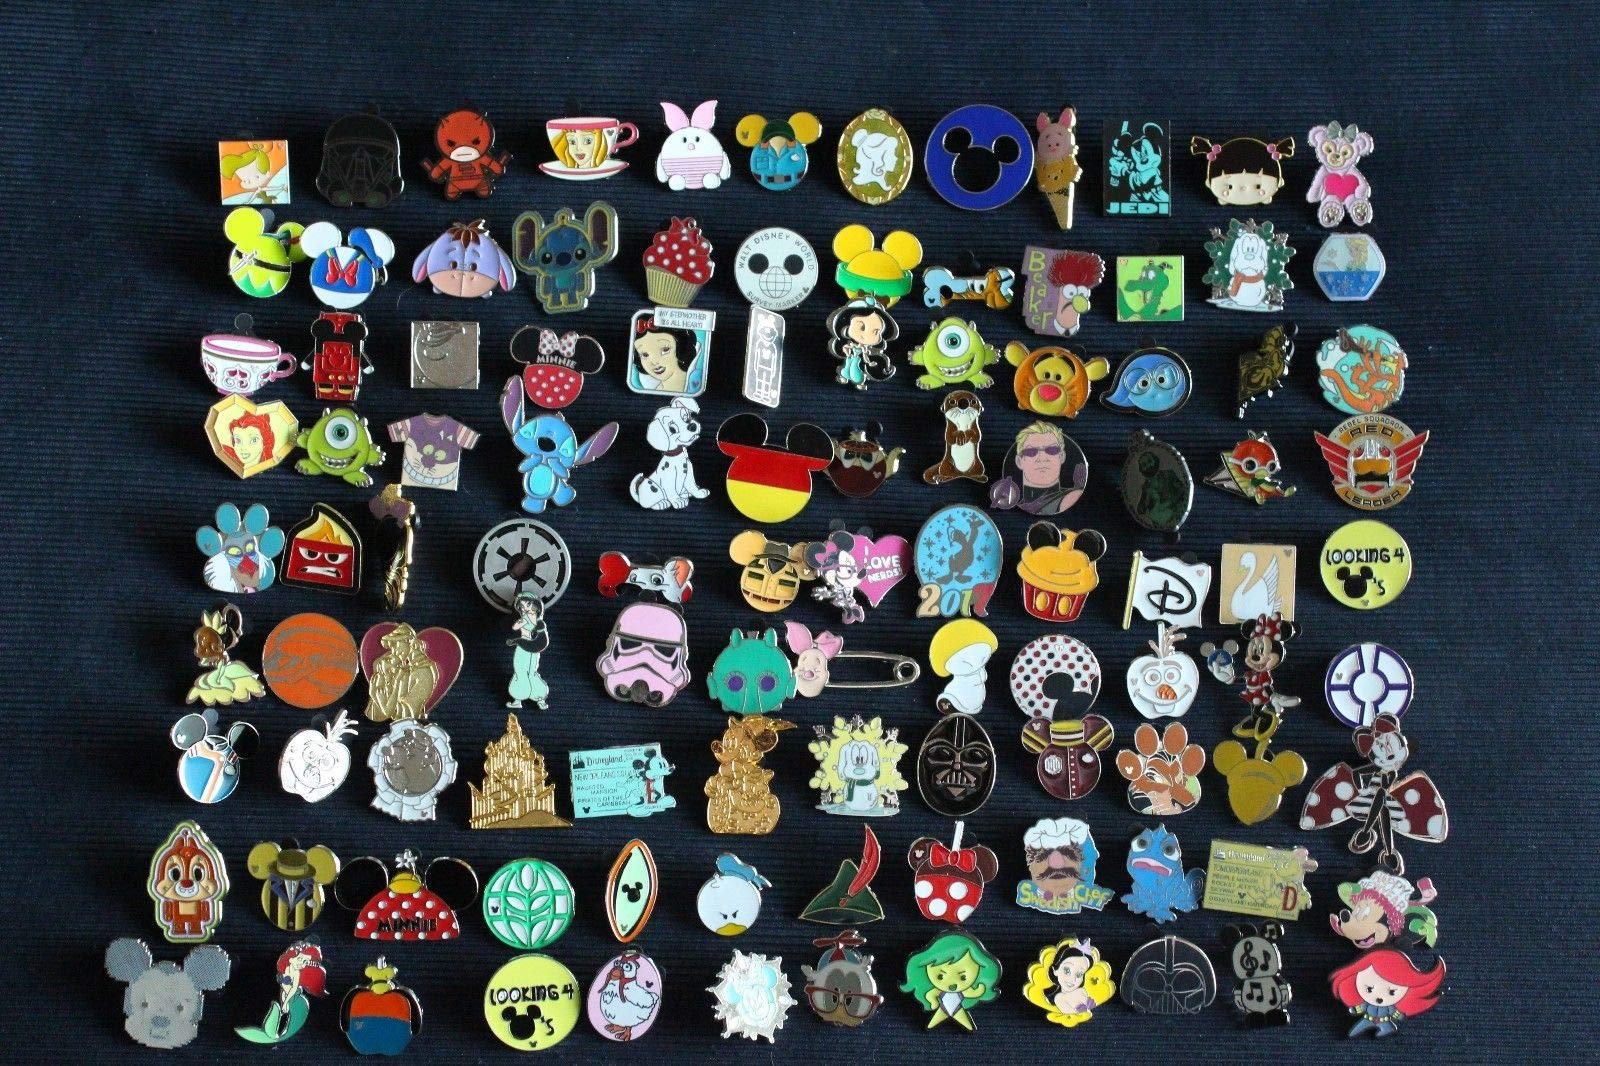 Disney Pin Trading Lot of 40 Assorted Pins - No Doubles - Tradable - Brand NEW by Carismatic